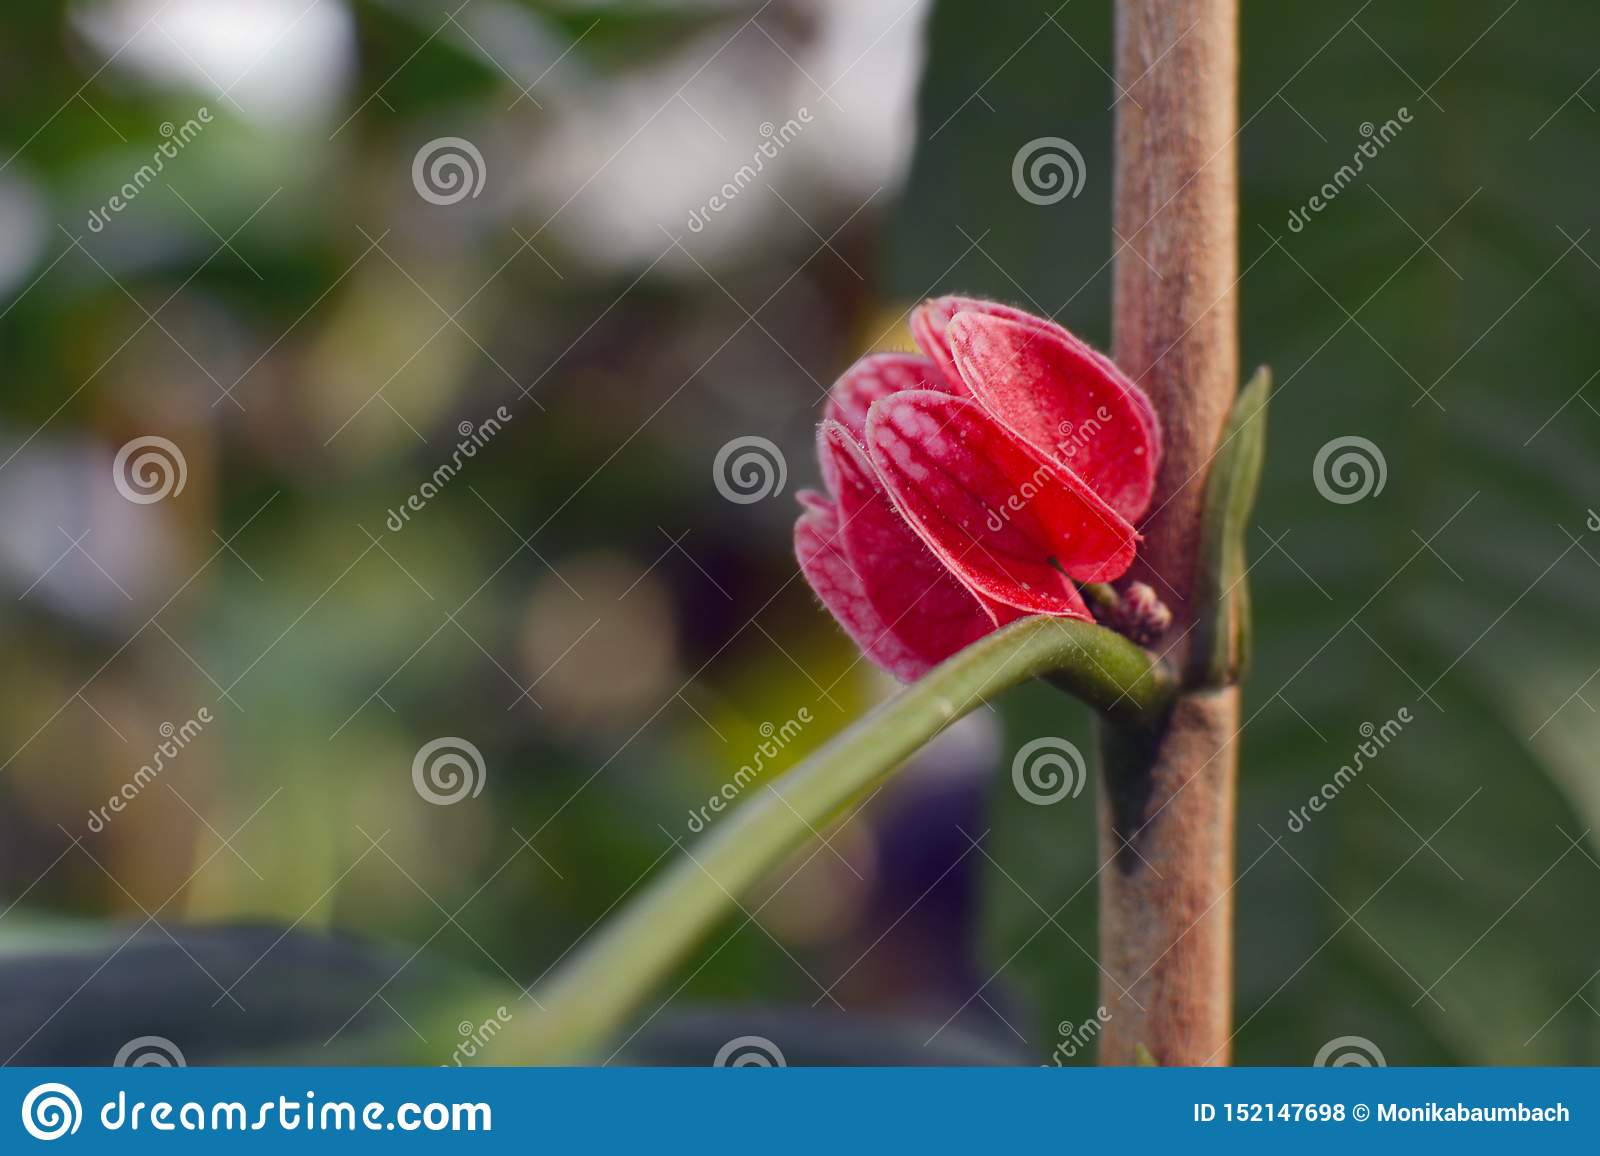 Red flower of a `Malvacea Goethea Strictiflora Hook` Mallow plant in full boom